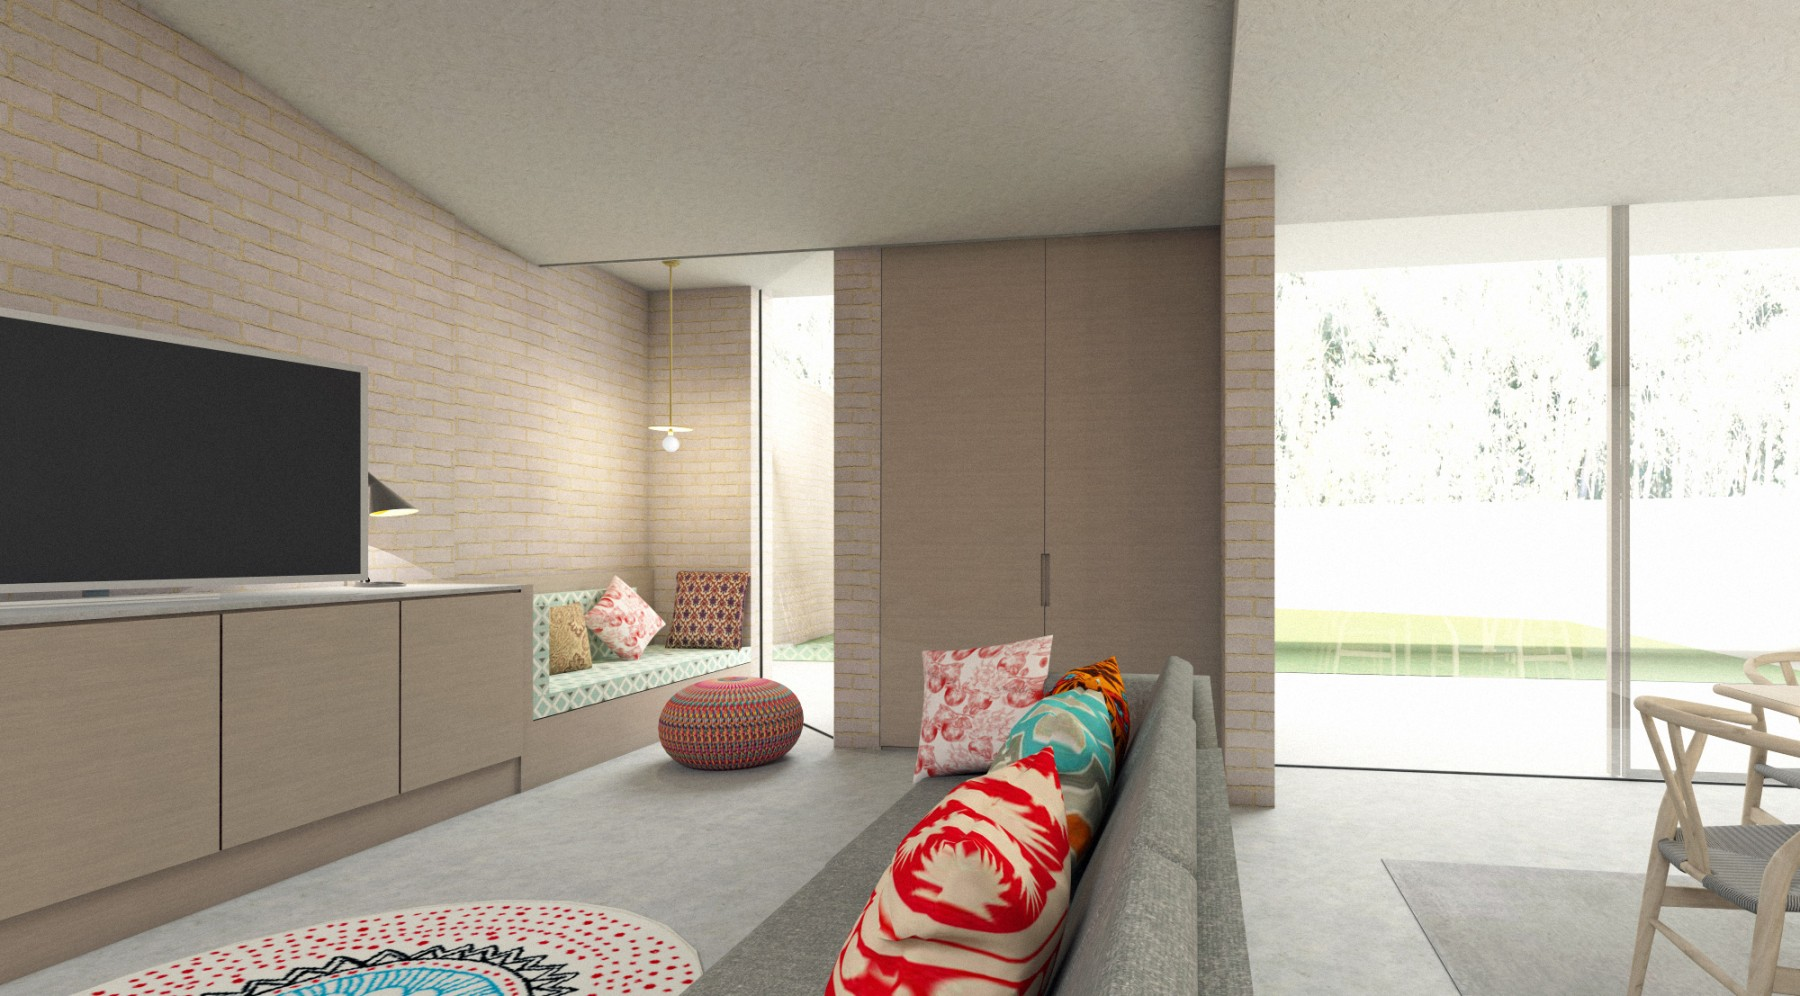 Canonbury house extension in brick London: interior